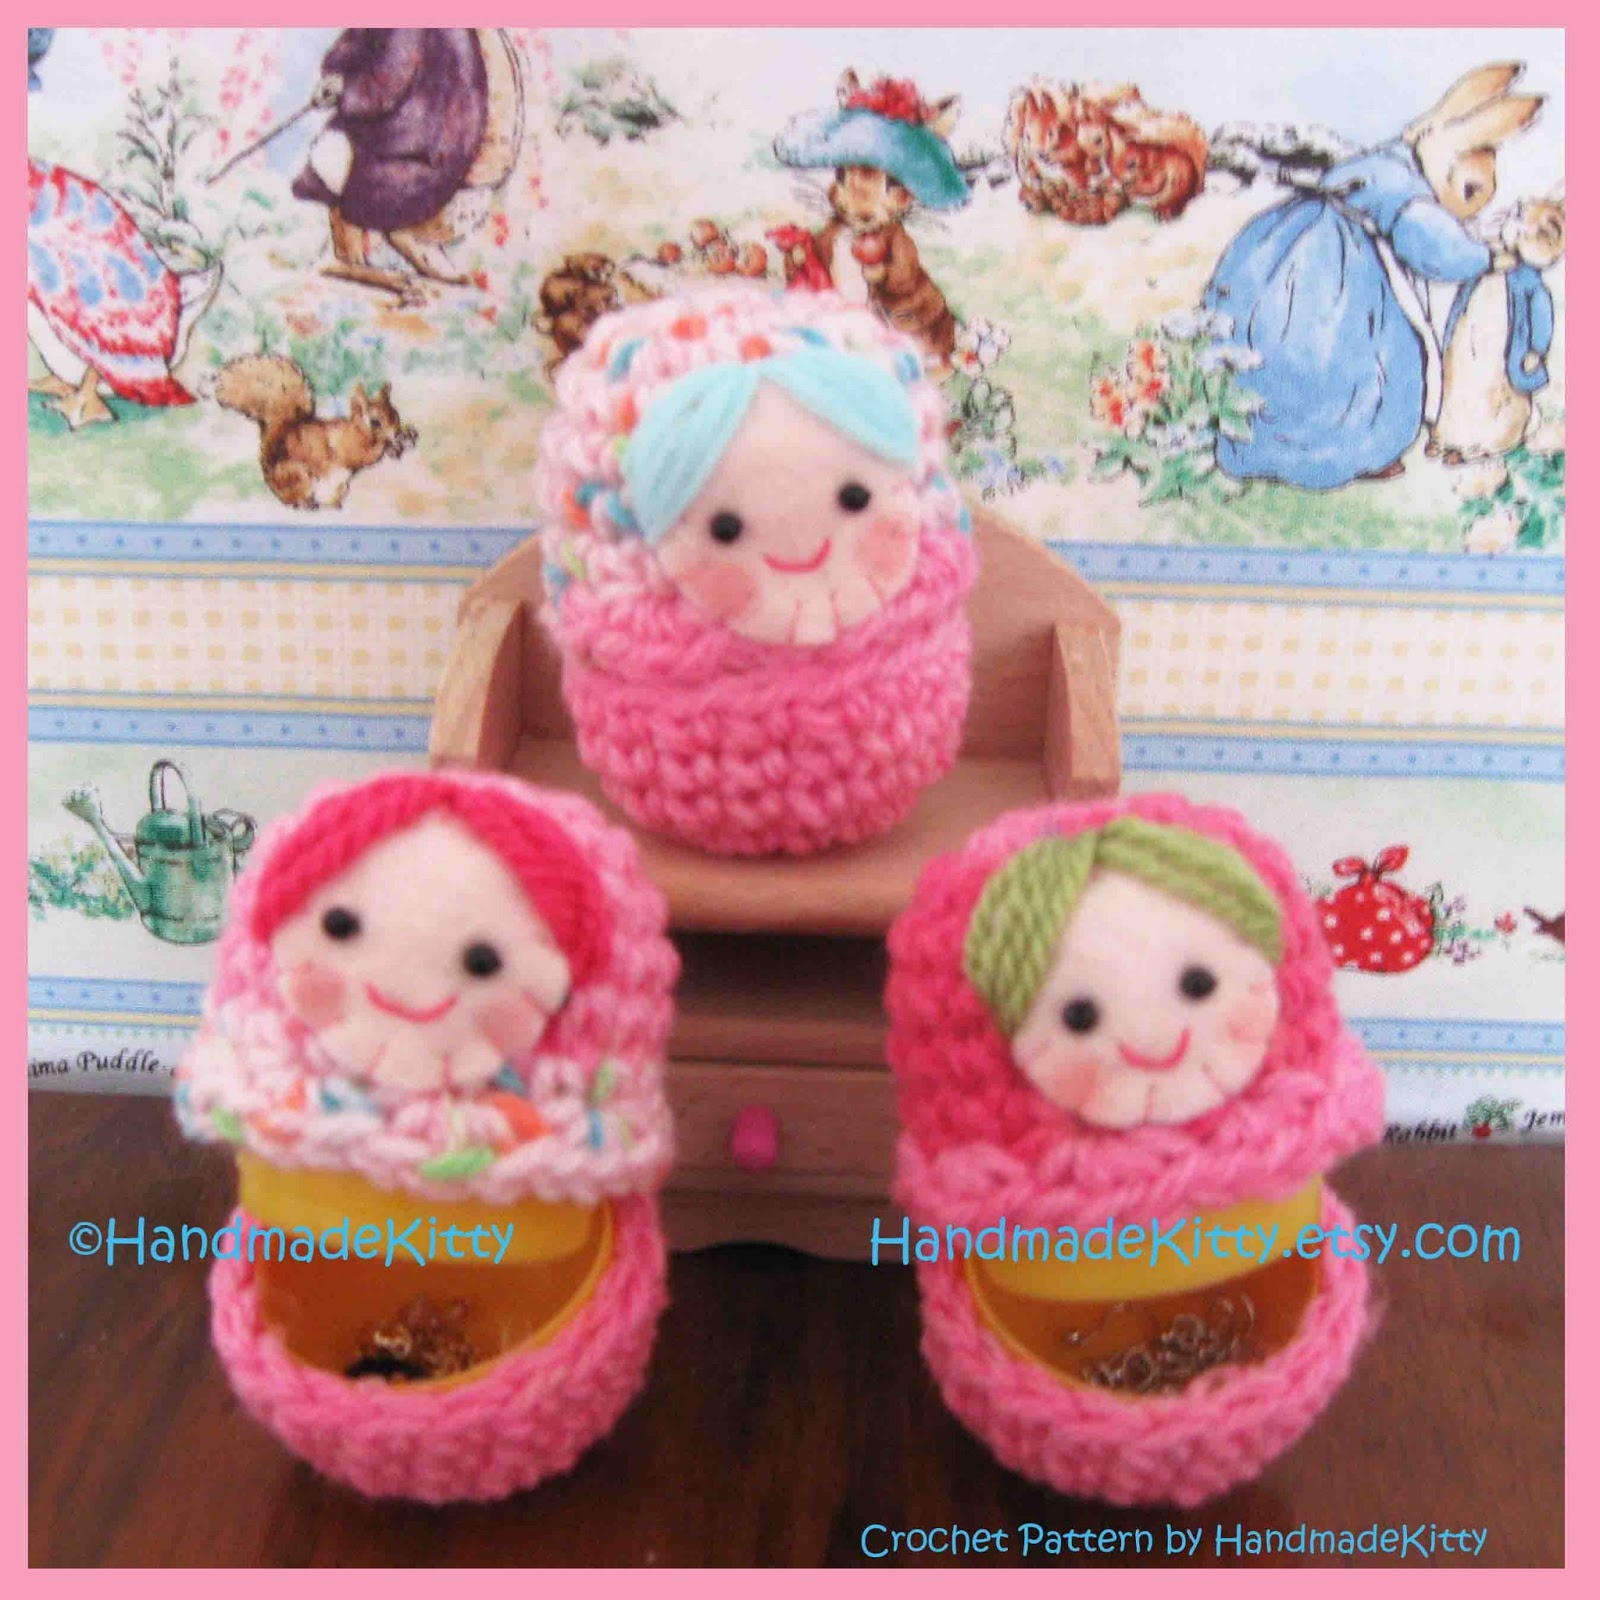 HandmadeKitty: Free Matryoshka Russian Doll Cases Crochet ...